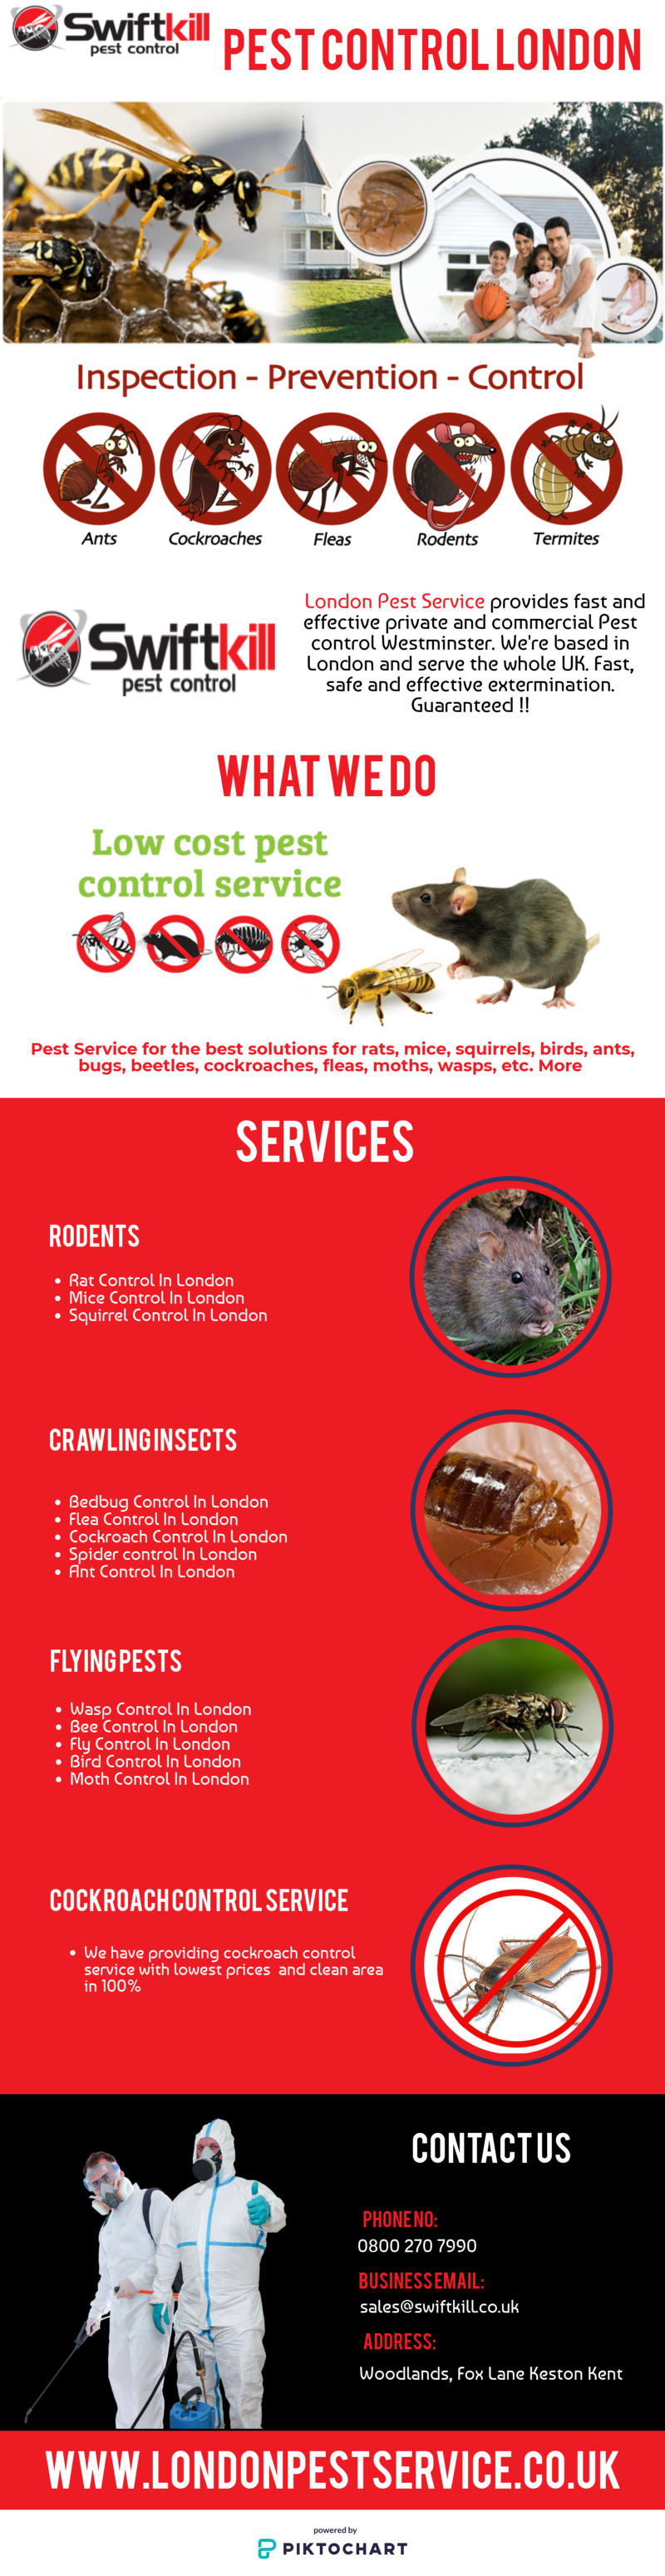 Pest Control in London is committed to providing a pest